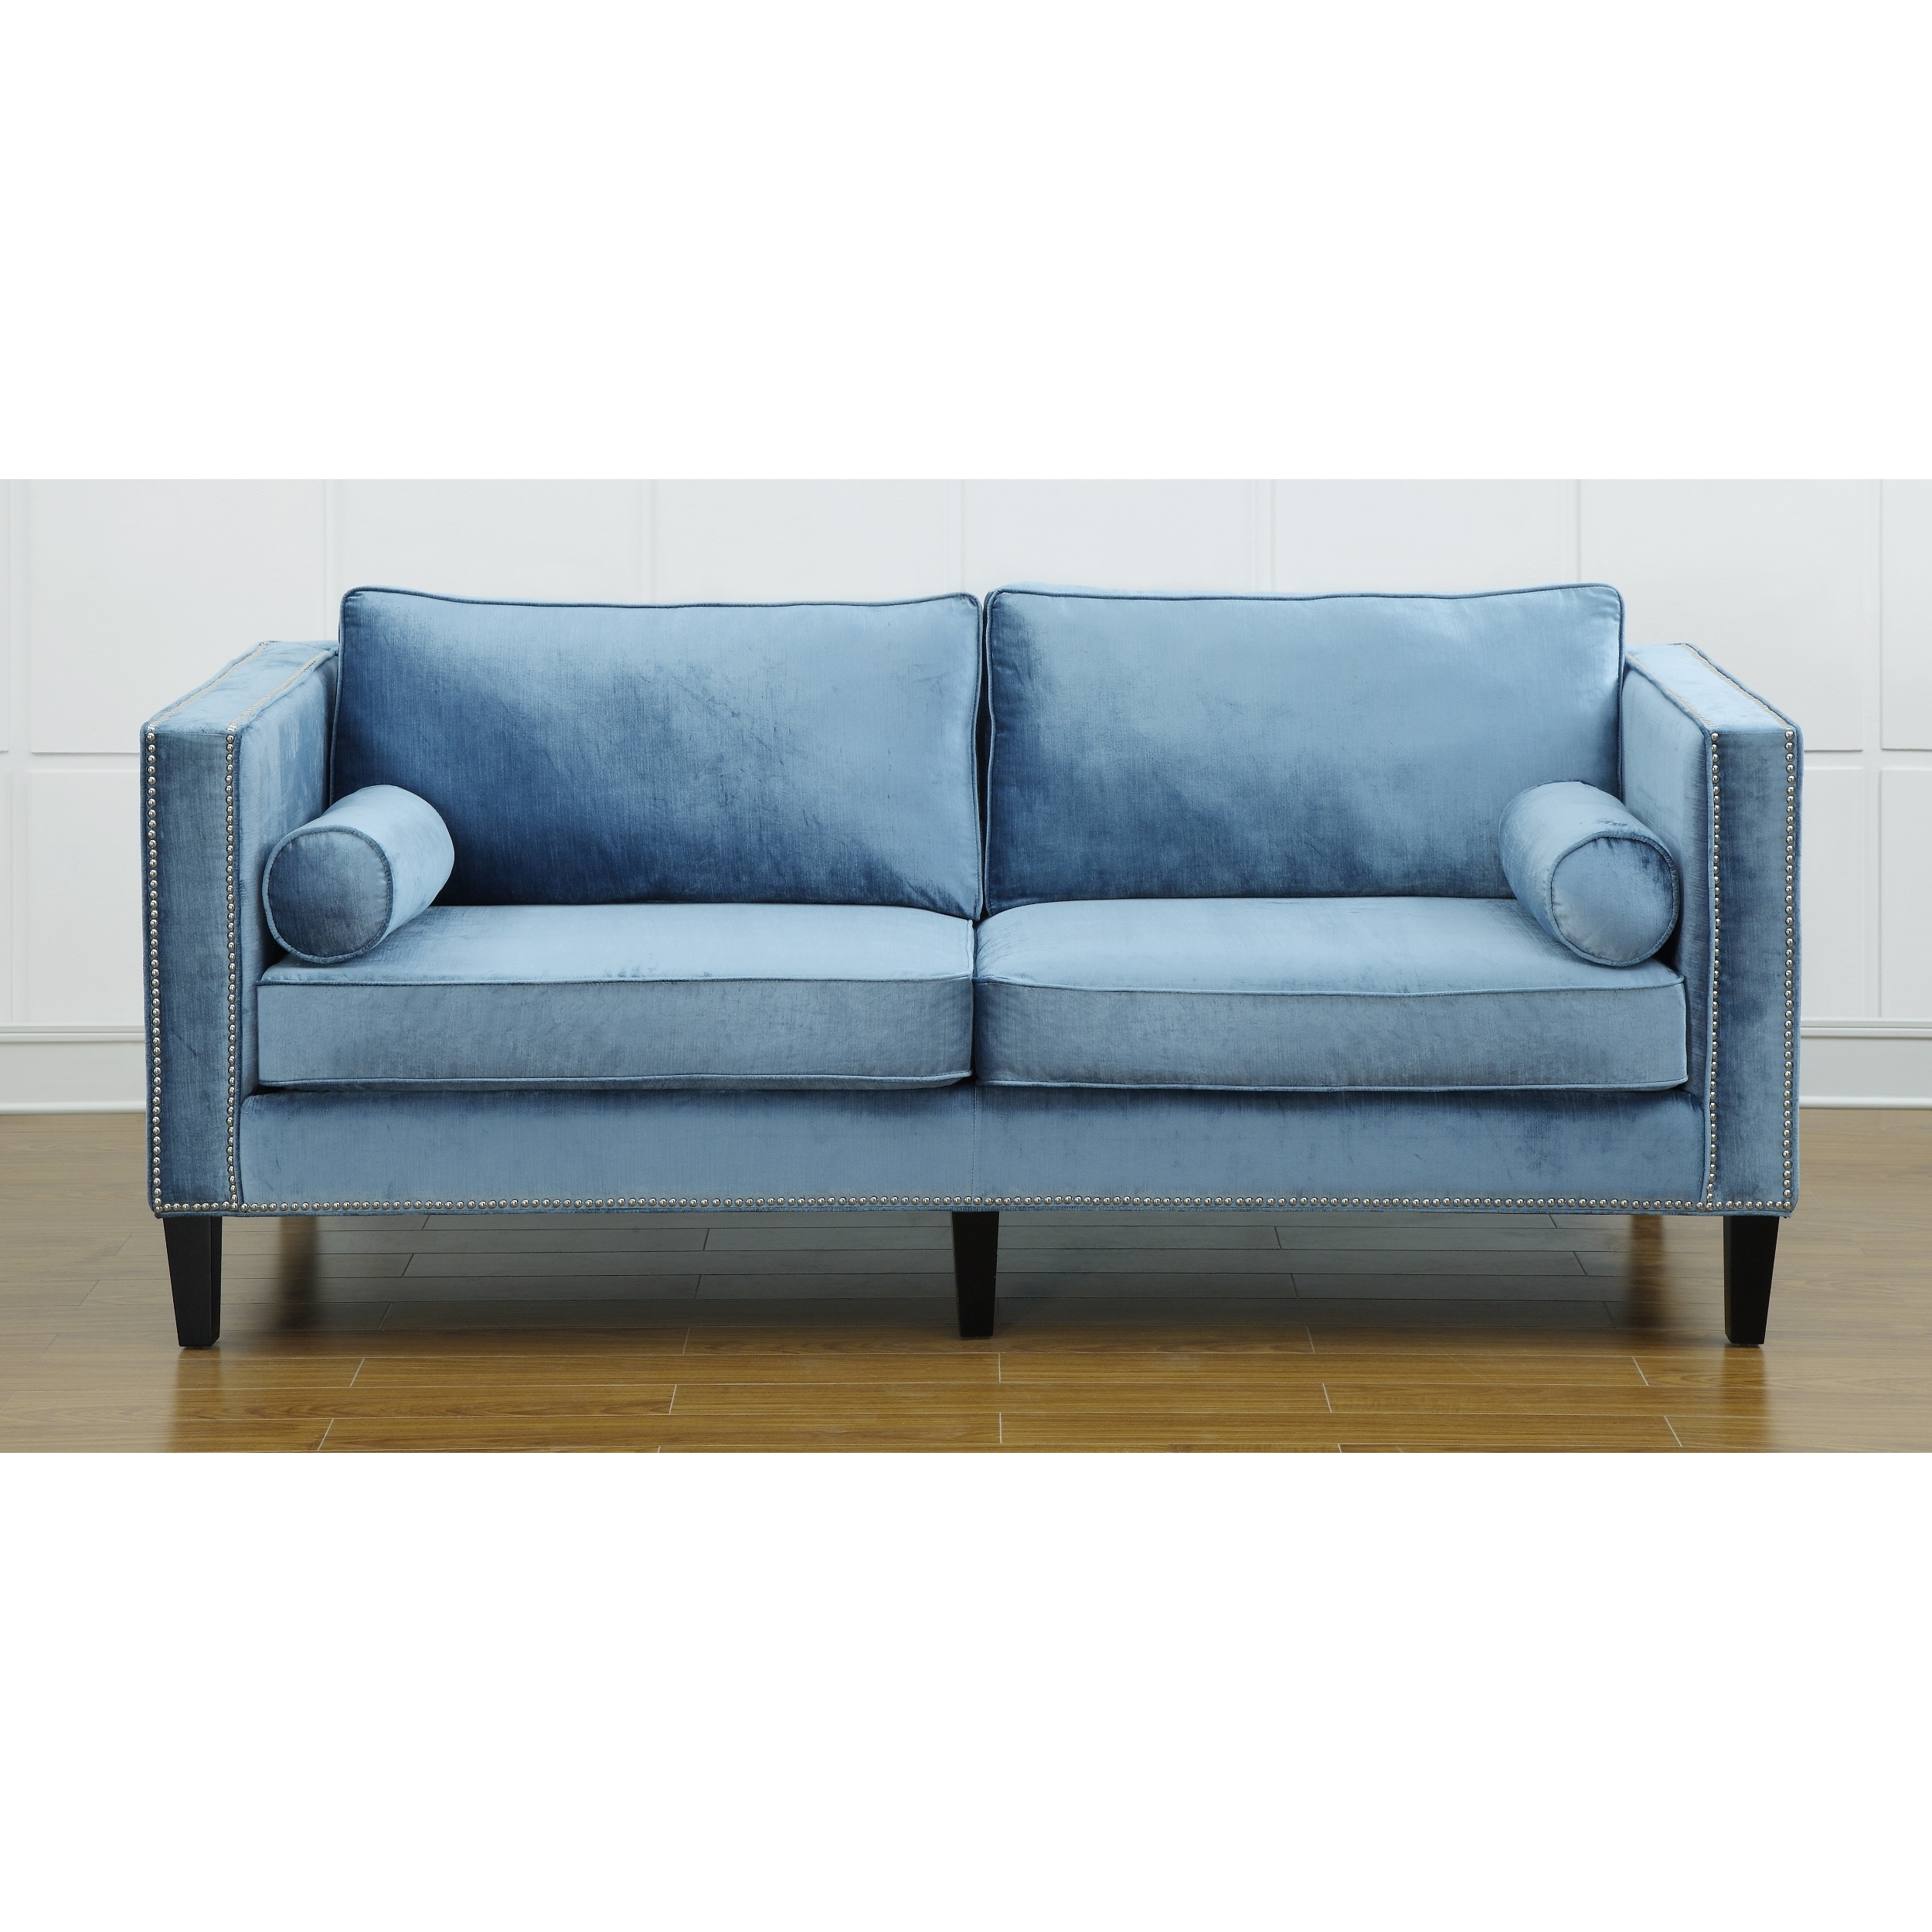 tropical style light blue velvet sofa armen living brand  u2013 couches  u0026 sofa